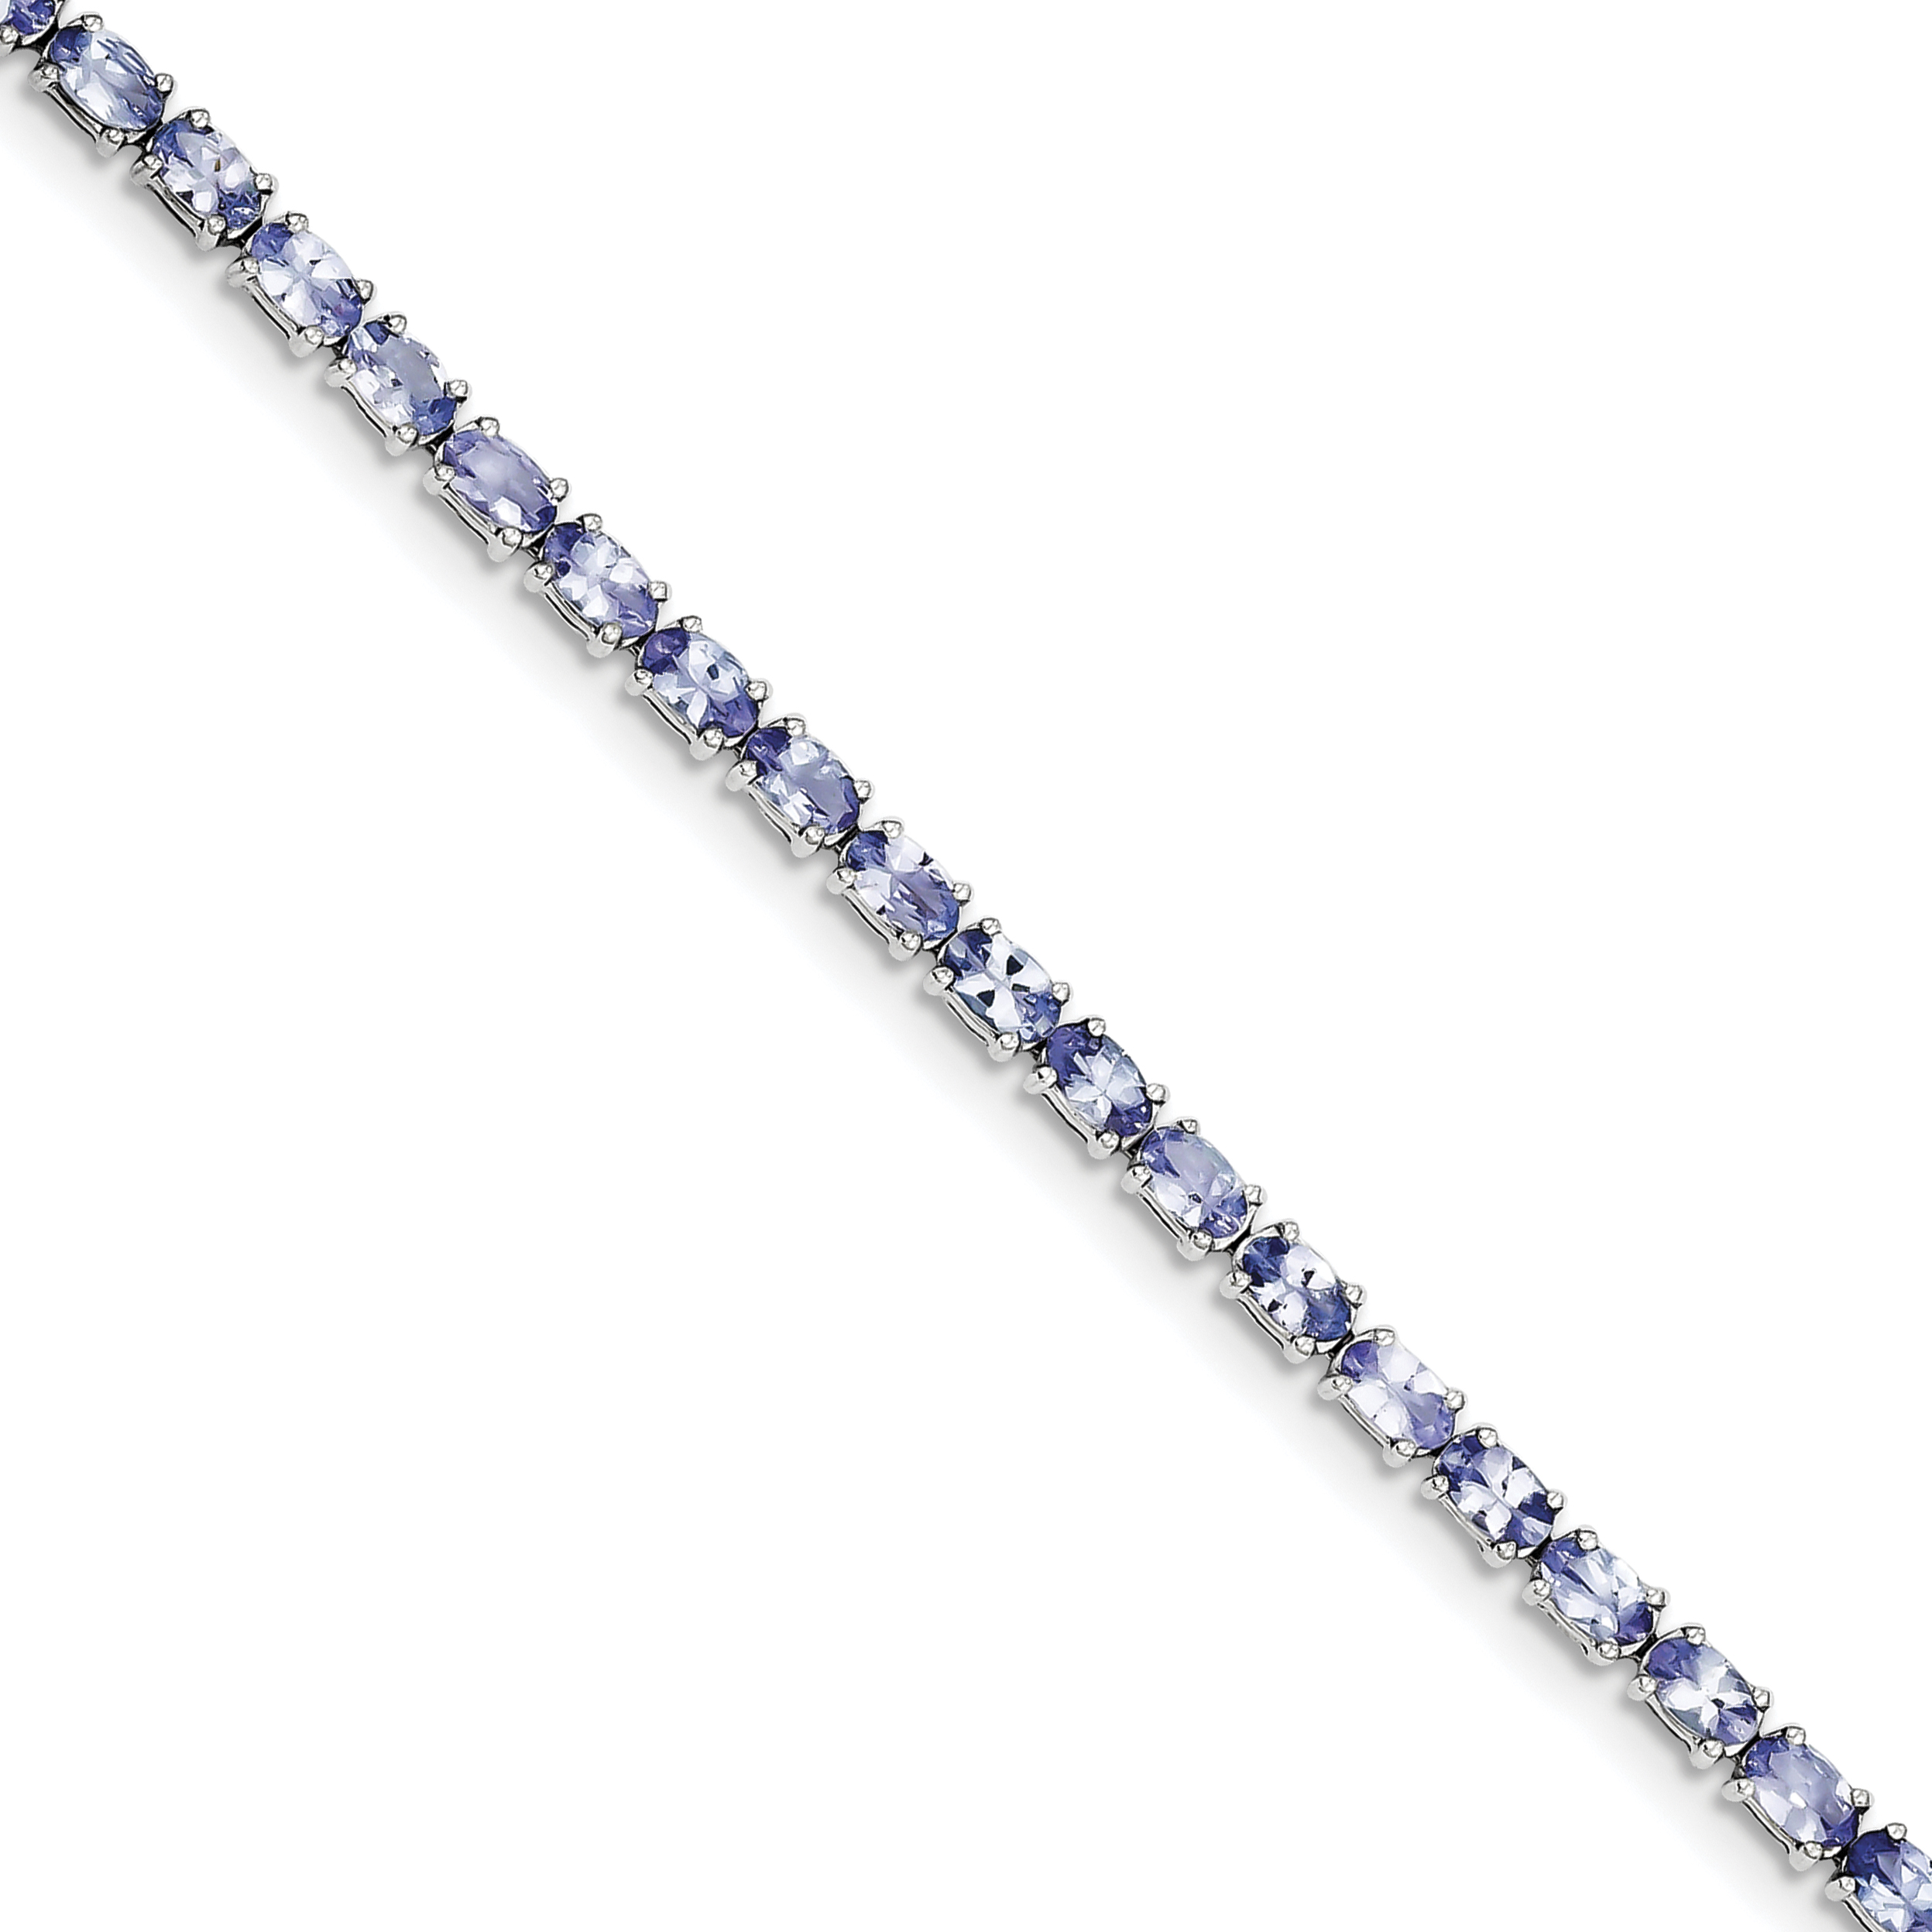 Sterling Silver Rhodium-plated Tanzanite Bracelet QX865TZ by Mother's Day